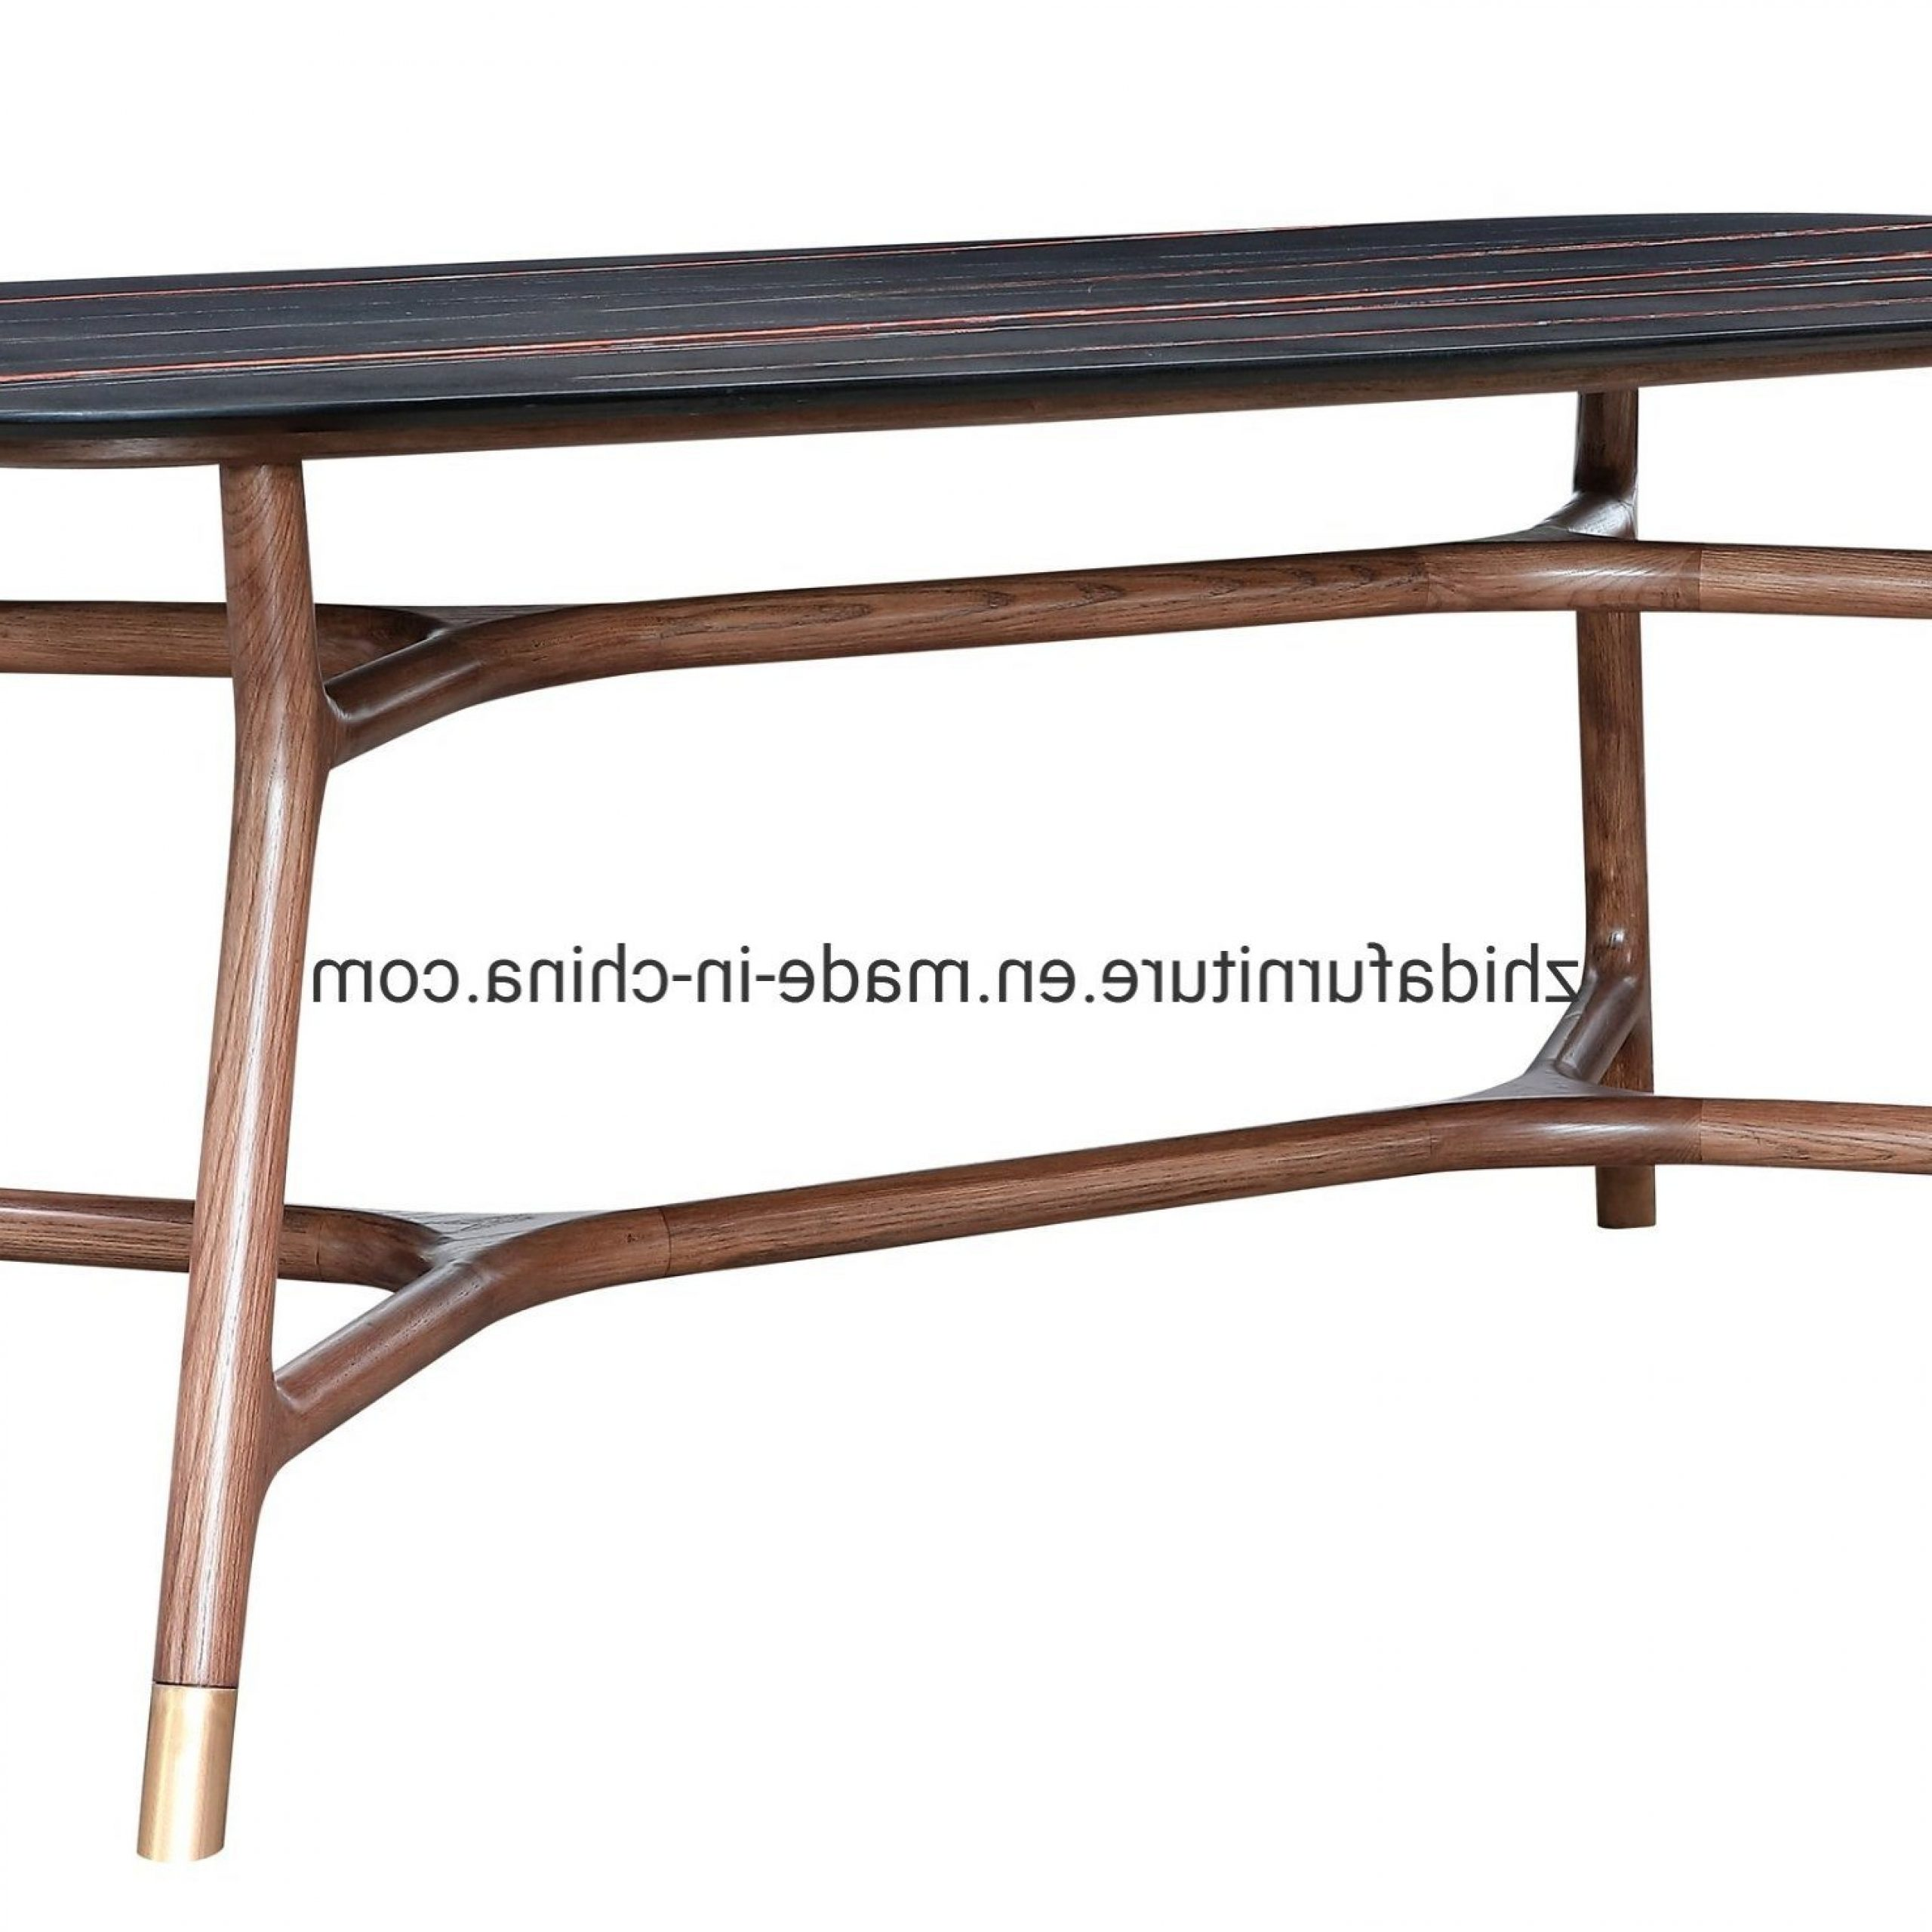 [%[Hot Item] Modern Black Marble Top Dining Table With Wooden Base With 2019 Wood Top Dining Tables Wood Top Dining Tables Within Widely Used [Hot Item] Modern Black Marble Top Dining Table With Wooden Base 2019 Wood Top Dining Tables With [Hot Item] Modern Black Marble Top Dining Table With Wooden Base Fashionable [Hot Item] Modern Black Marble Top Dining Table With Wooden Base Regarding Wood Top Dining Tables%] (View 9 of 25)